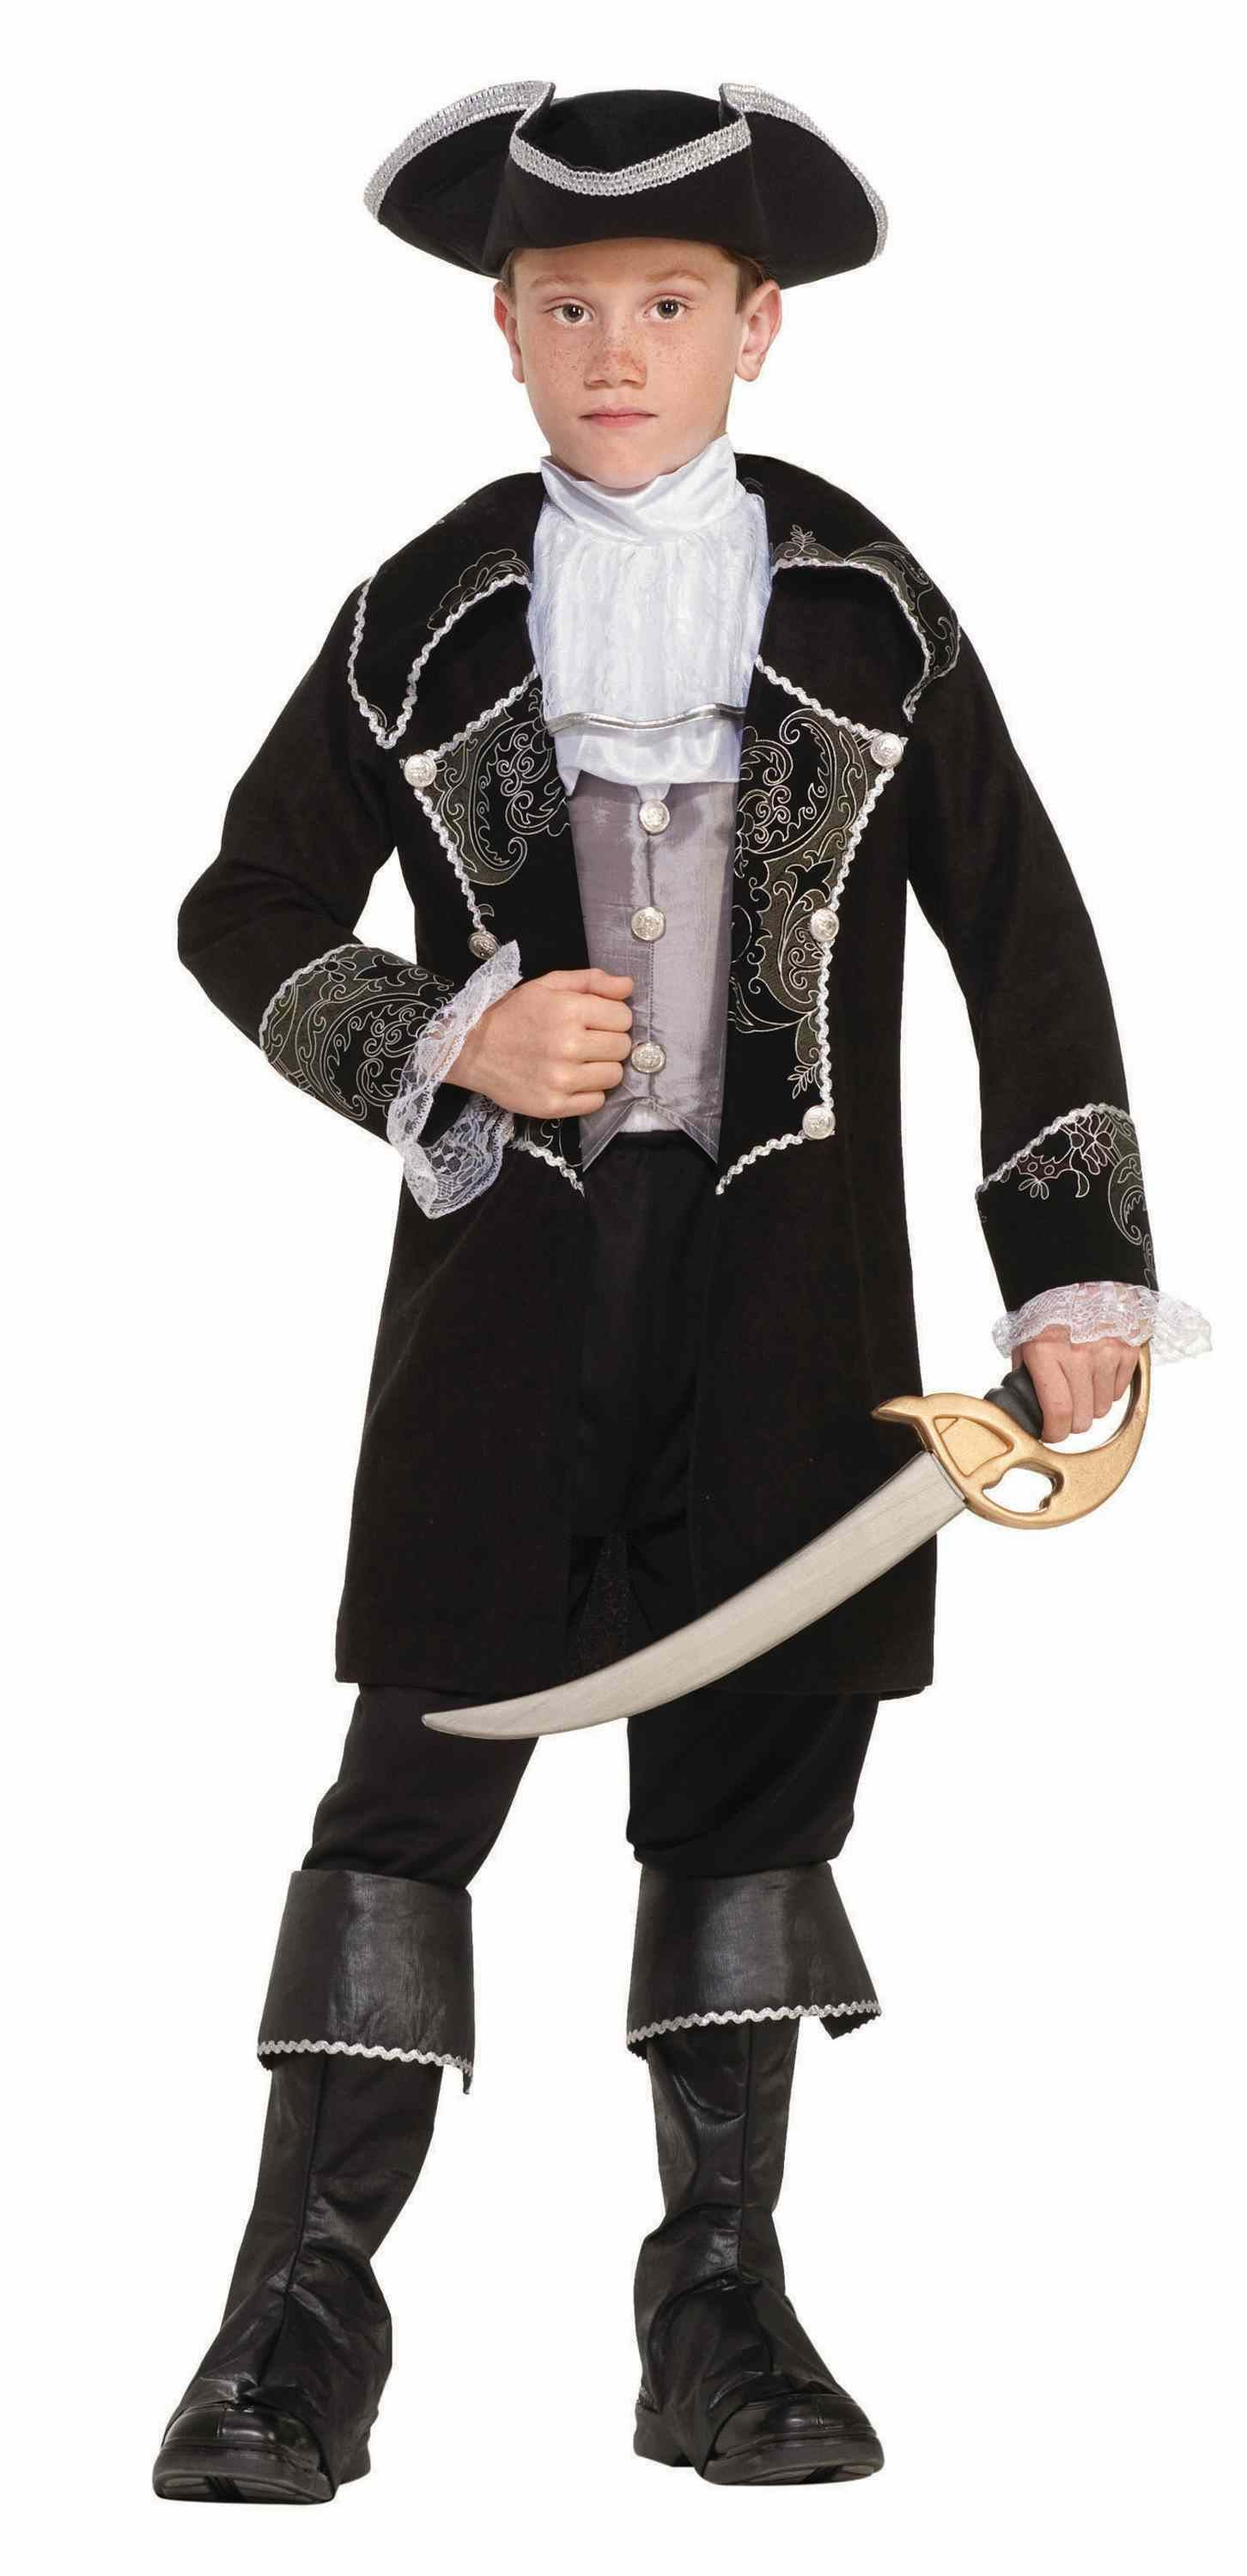 Kids Swashbuckler Pirate Boys Deluxe Costume  sc 1 st  The Costume Land : swashbuckler pirate costume  - Germanpascual.Com